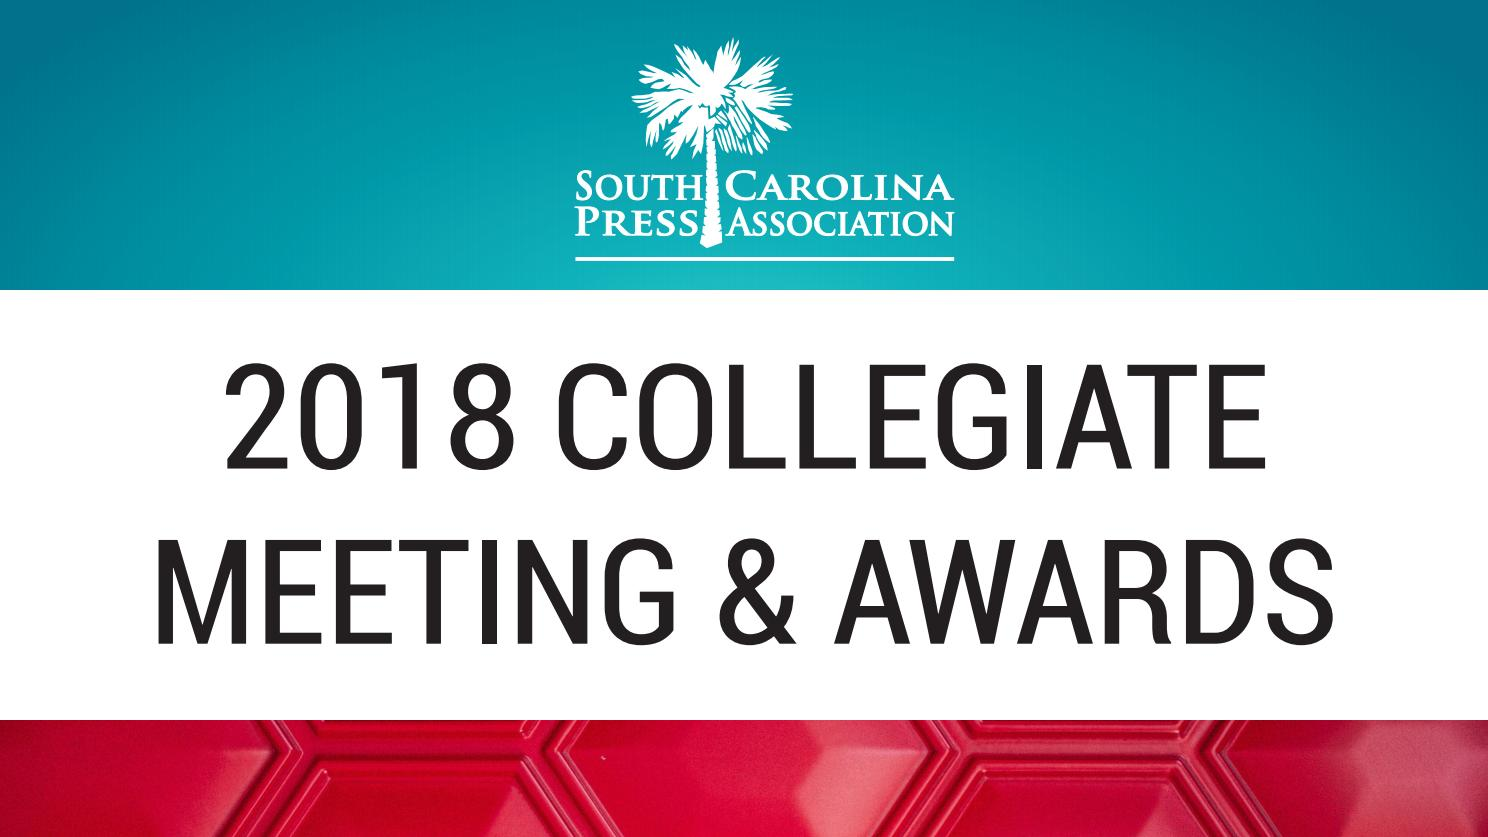 02d9a906 2018 Collegiate Meeting & Awards by S.C. Press Association - issuu